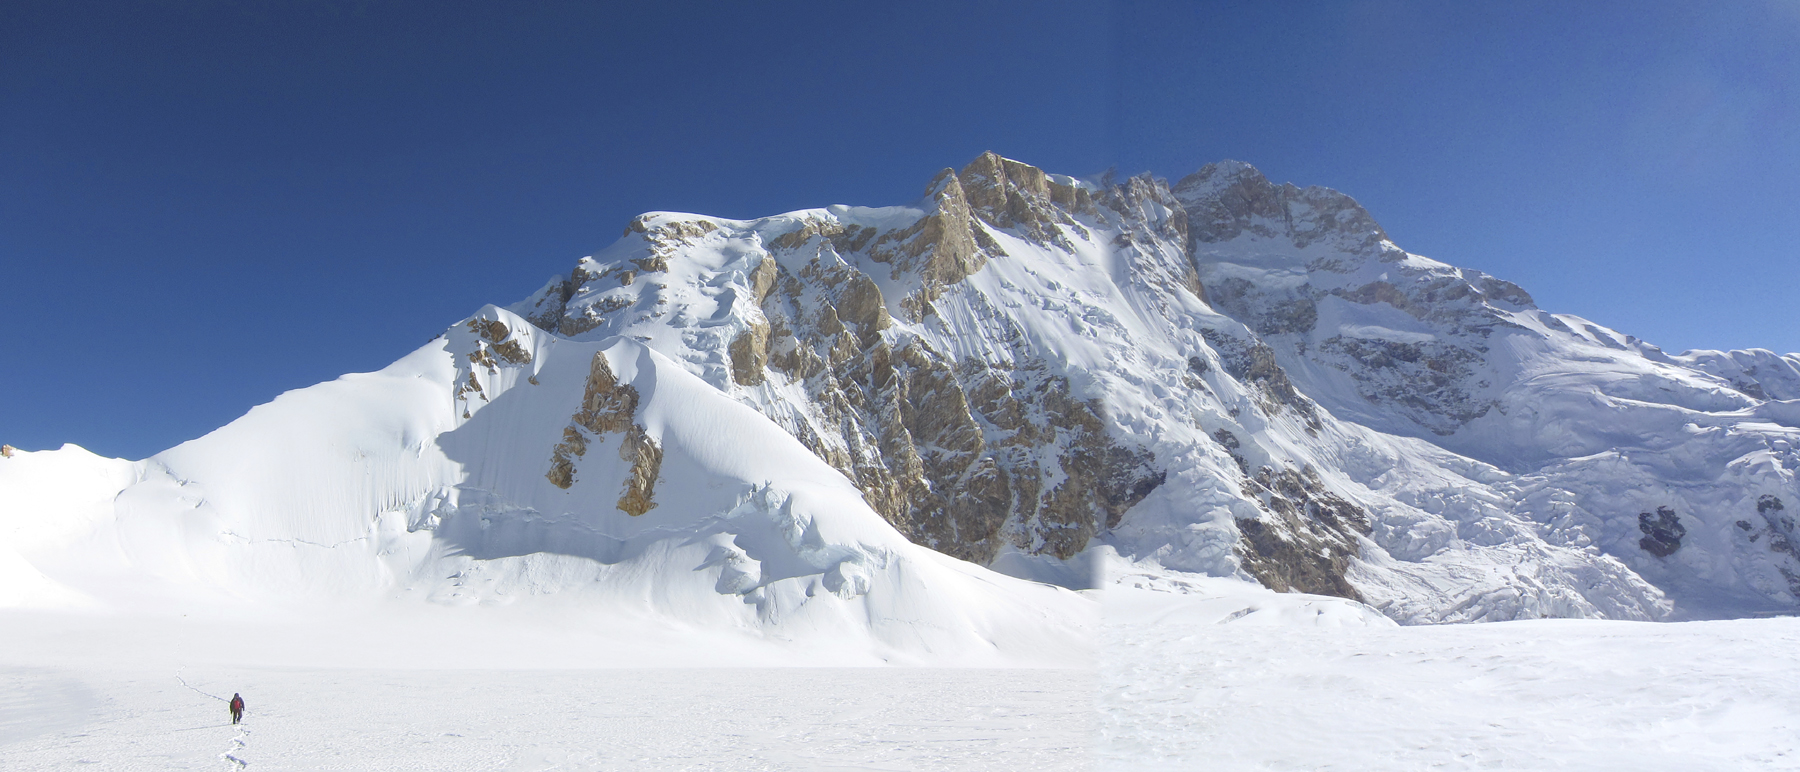 West ridge and southwest face of Manaslu (8,163m) seen from the Thulagi Plateau. This face was climbed by a large Austrian expedition in 1972, the summit reached by a certain Reinhold Messner, climbing alone.